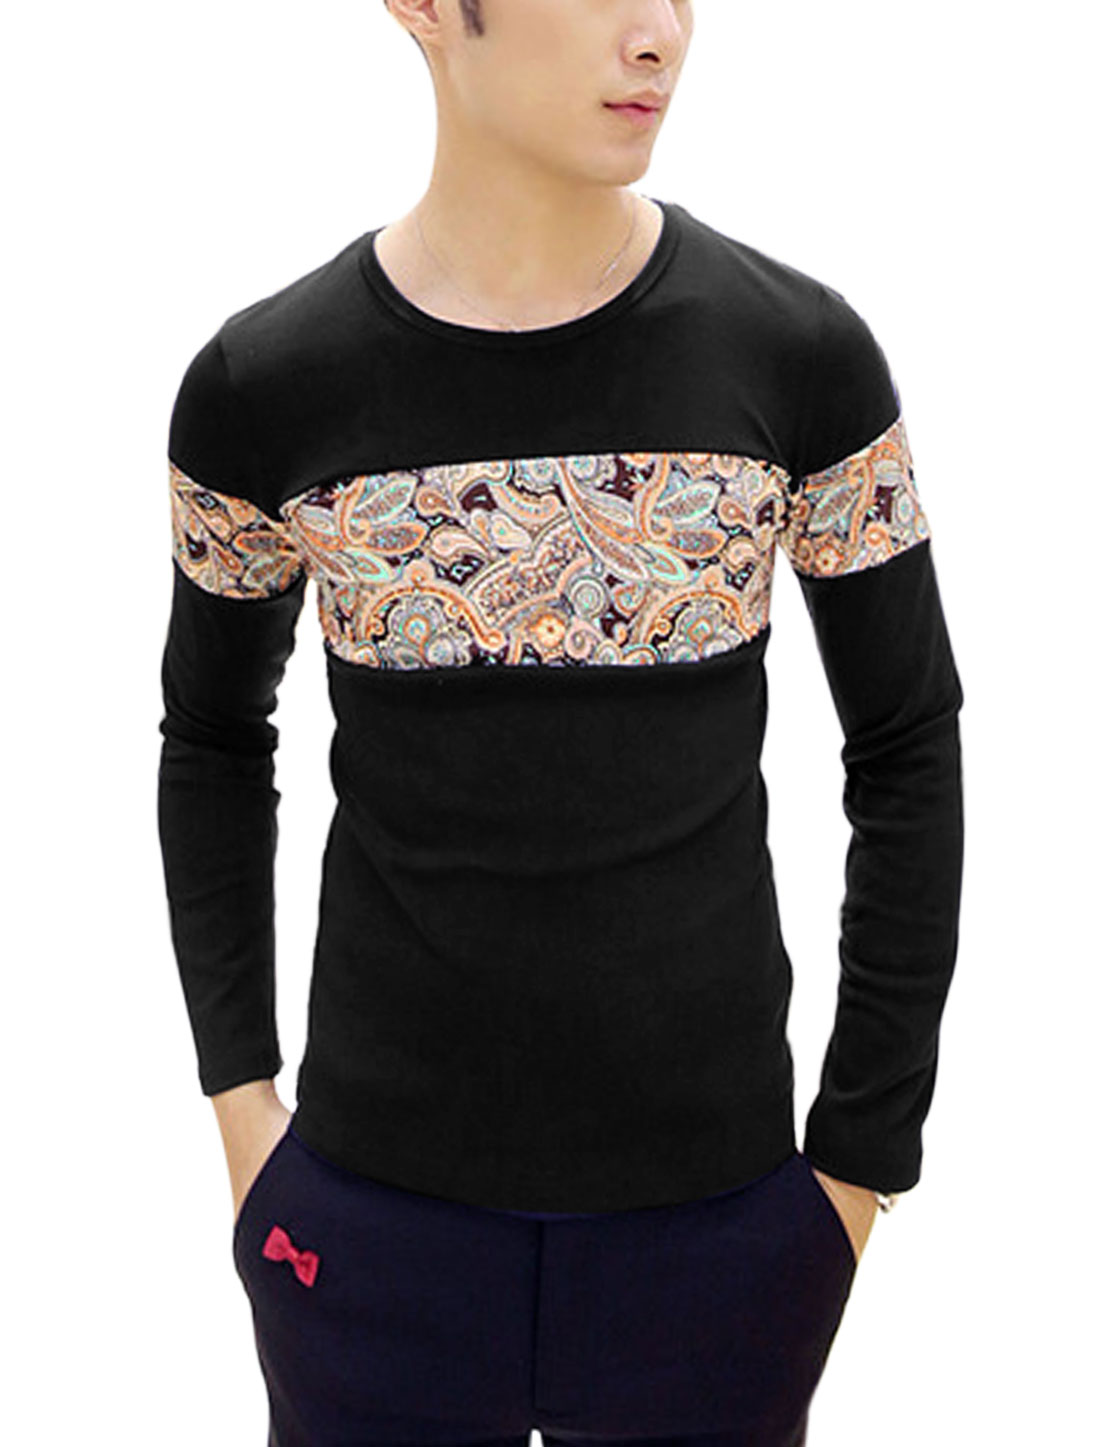 Men Contrast Paisleys Print Patched Design Casual Tee Shirt Black S